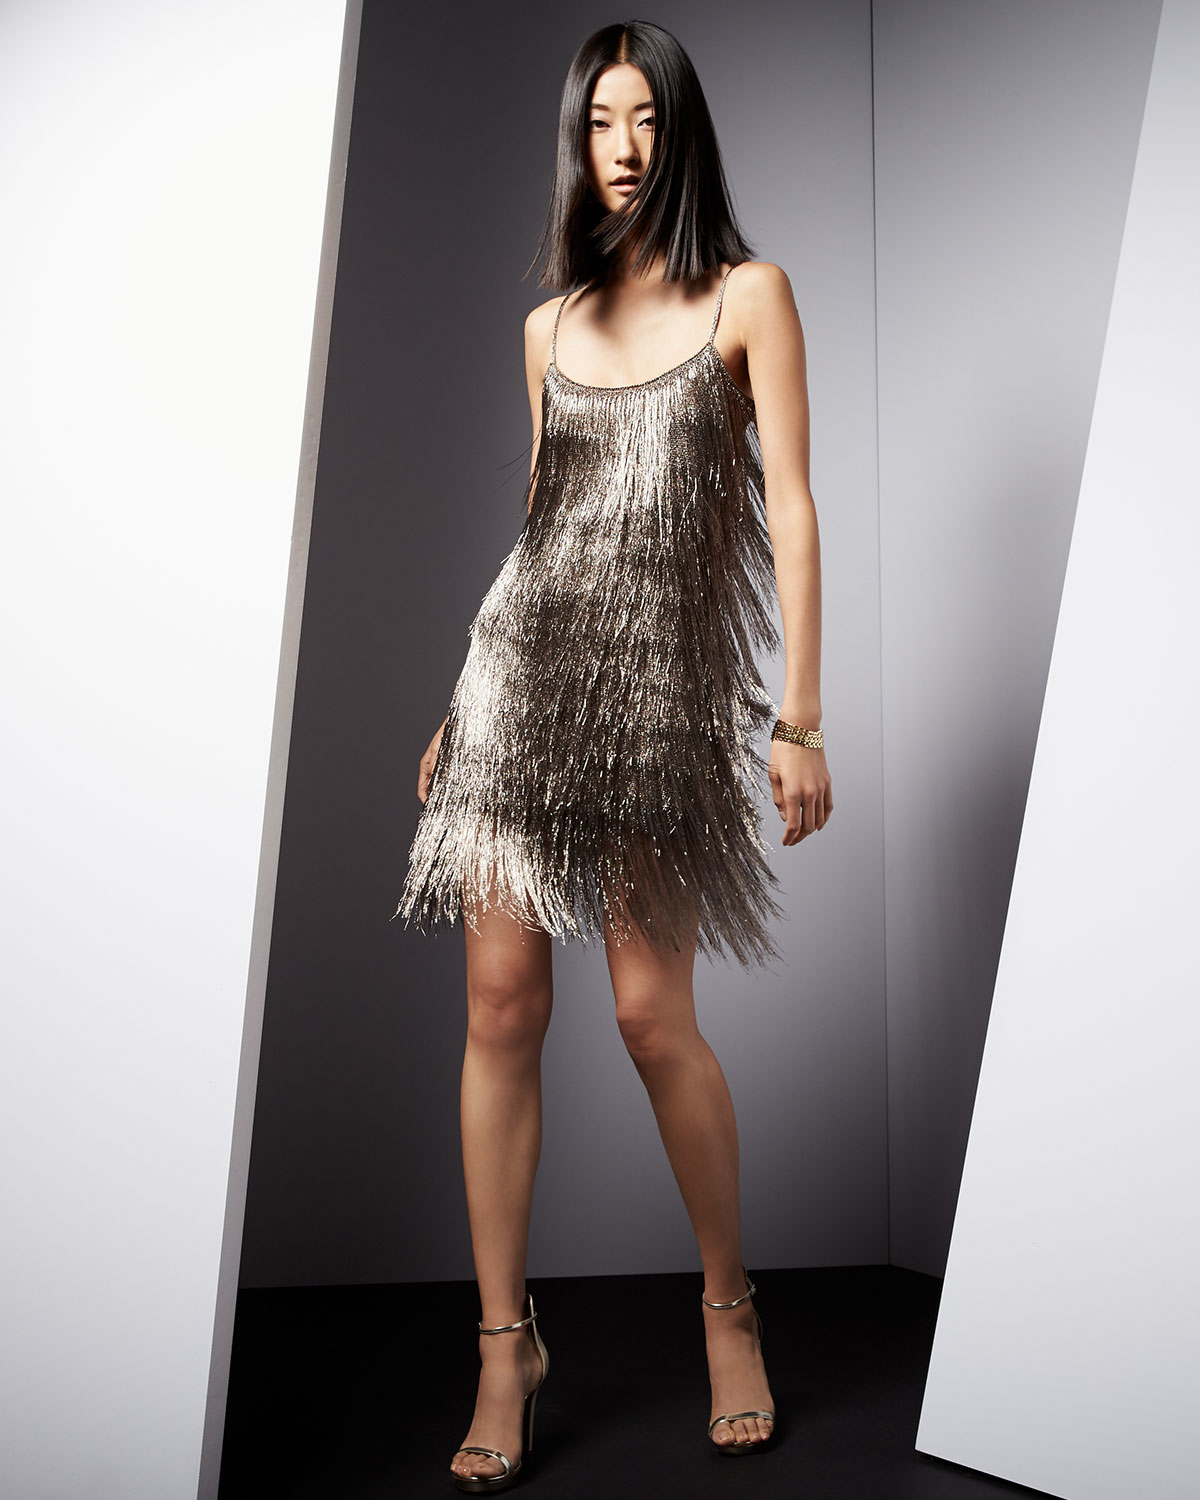 624359ac35a Rachel Zoe Sleeveless Fringe Cocktail Dress in Metallic - Lyst